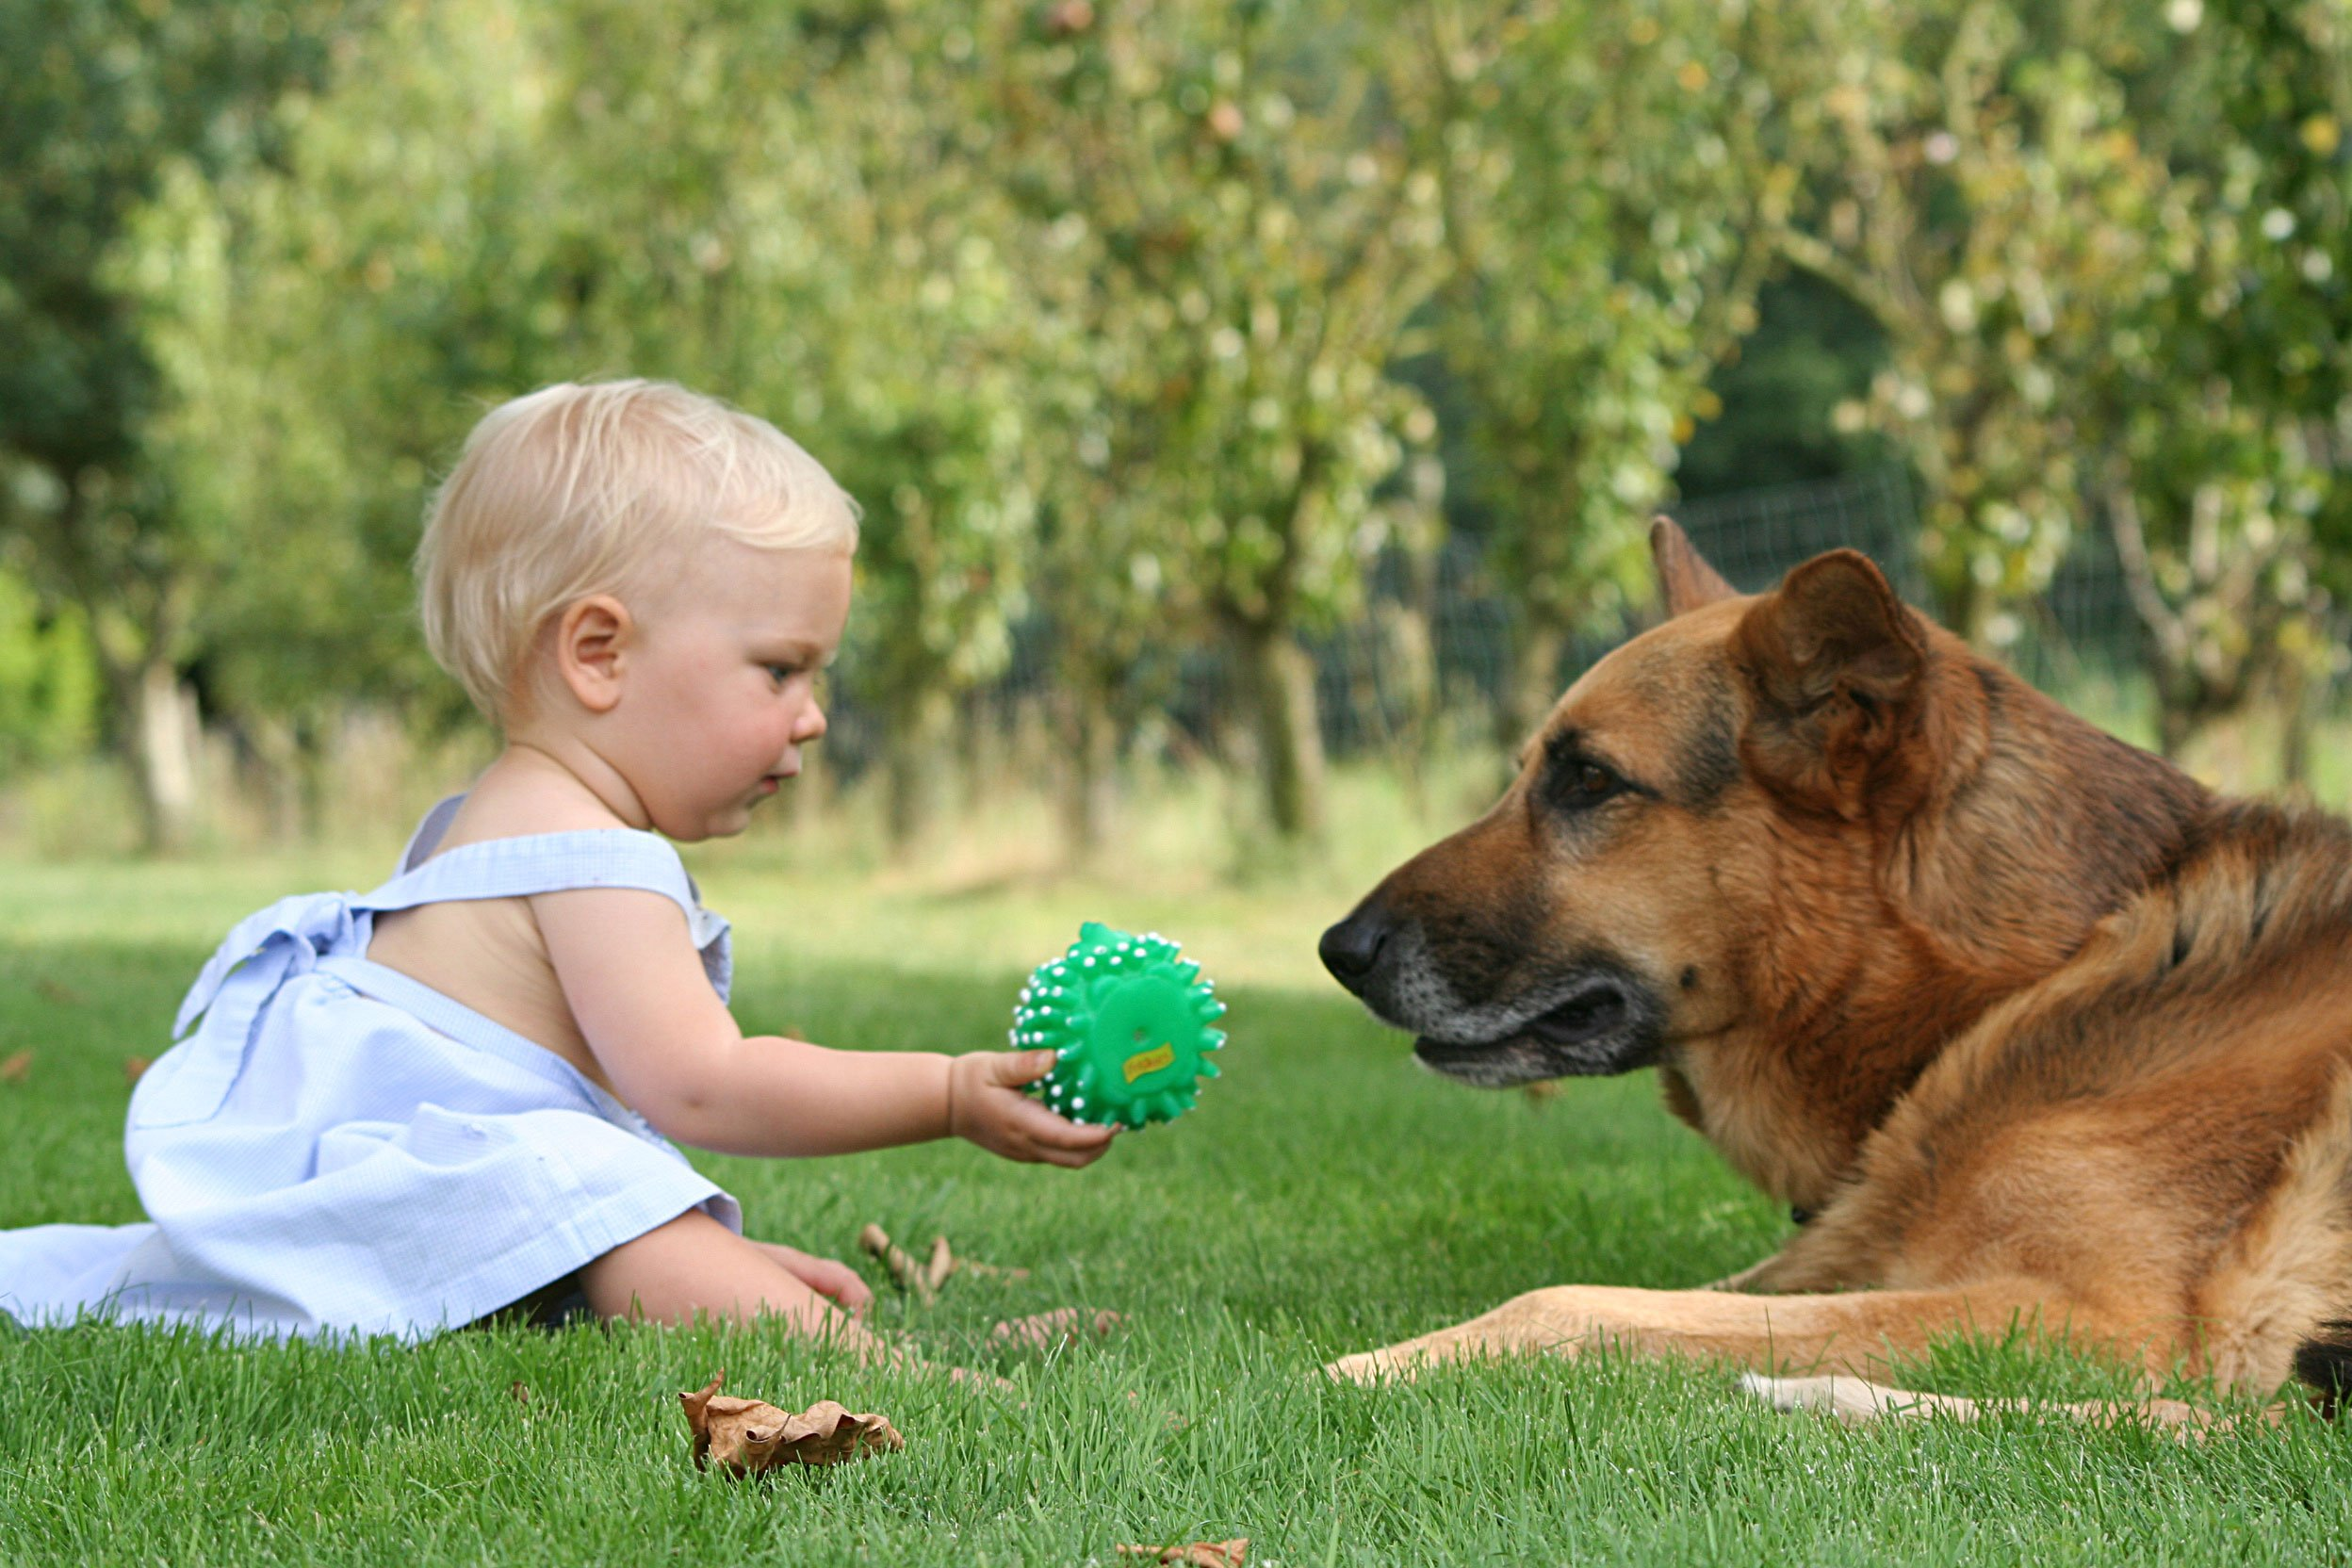 Involving Children In Caring For Family Pets